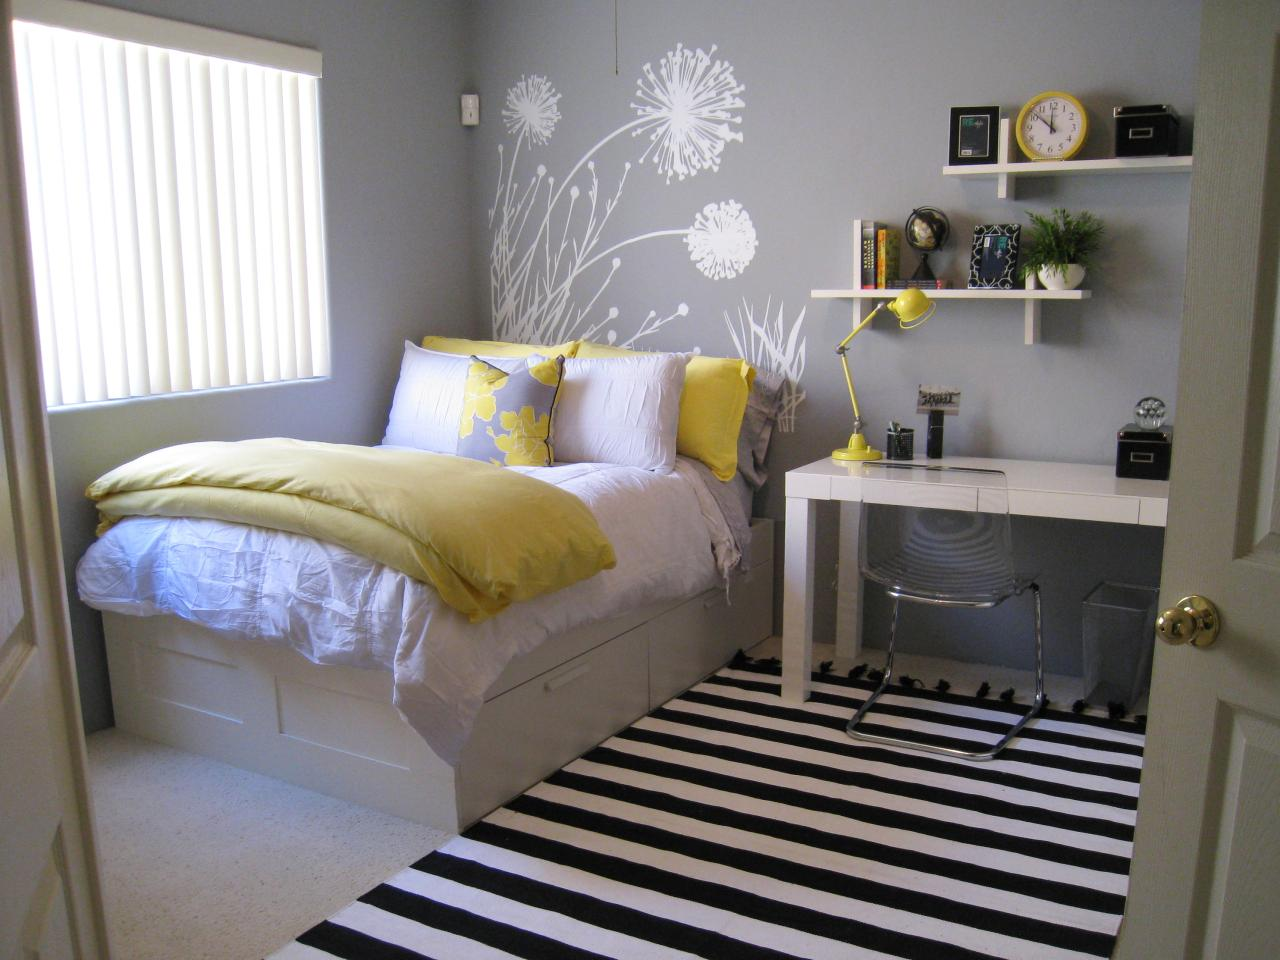 Decal Dreams : corner bed headboard ideas  - pillowsntoast.com